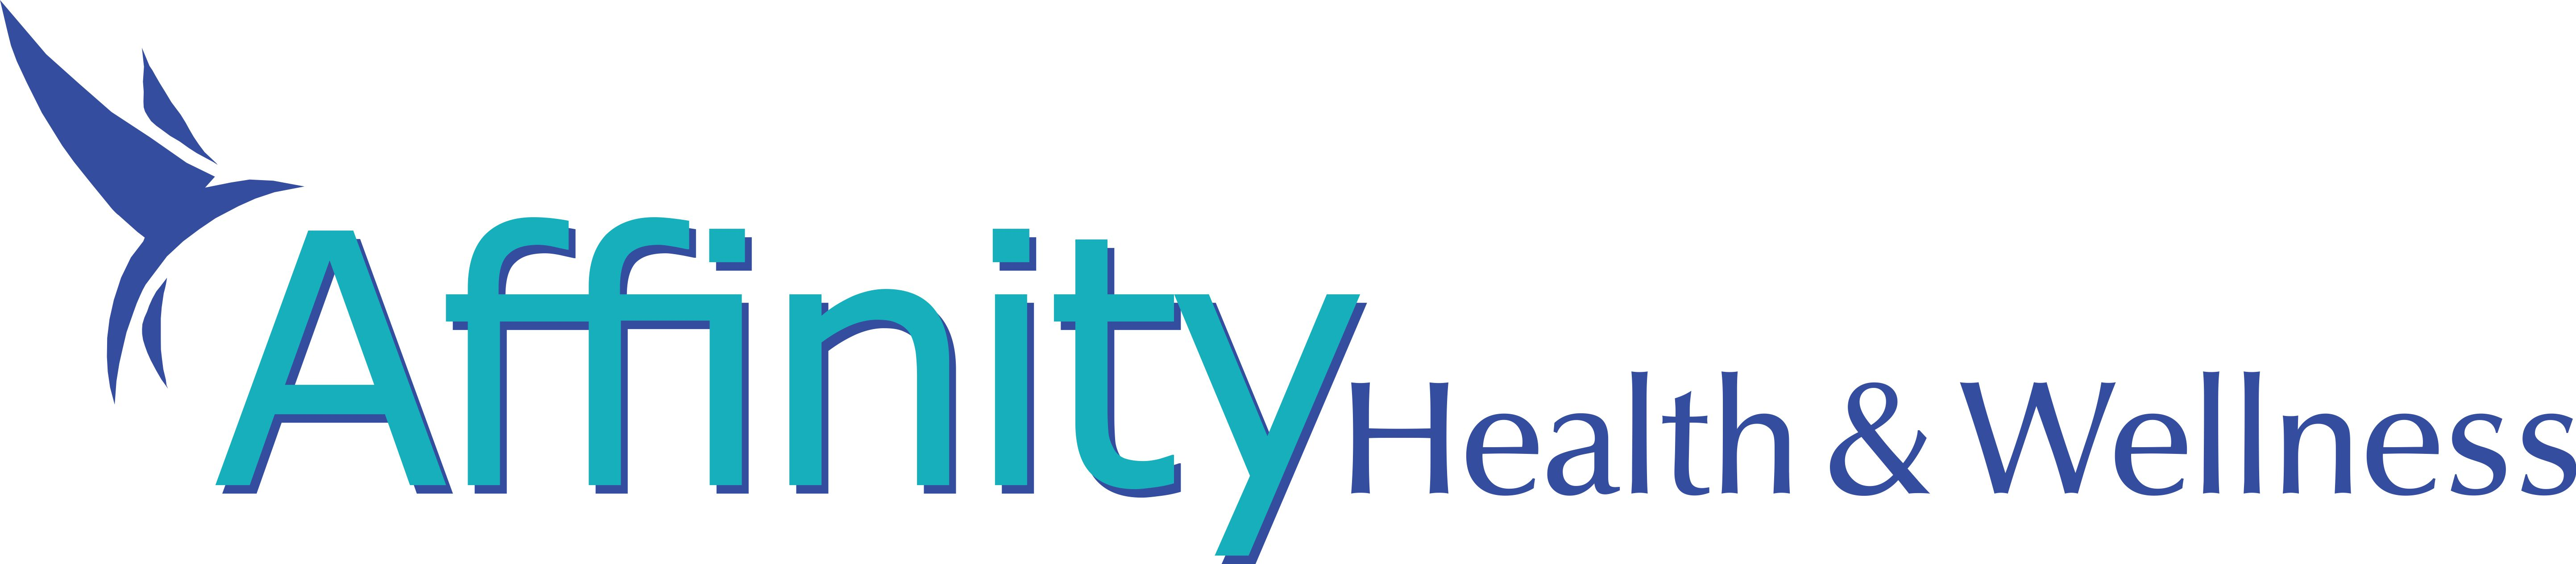 Logo for Affinity Health & Wellness